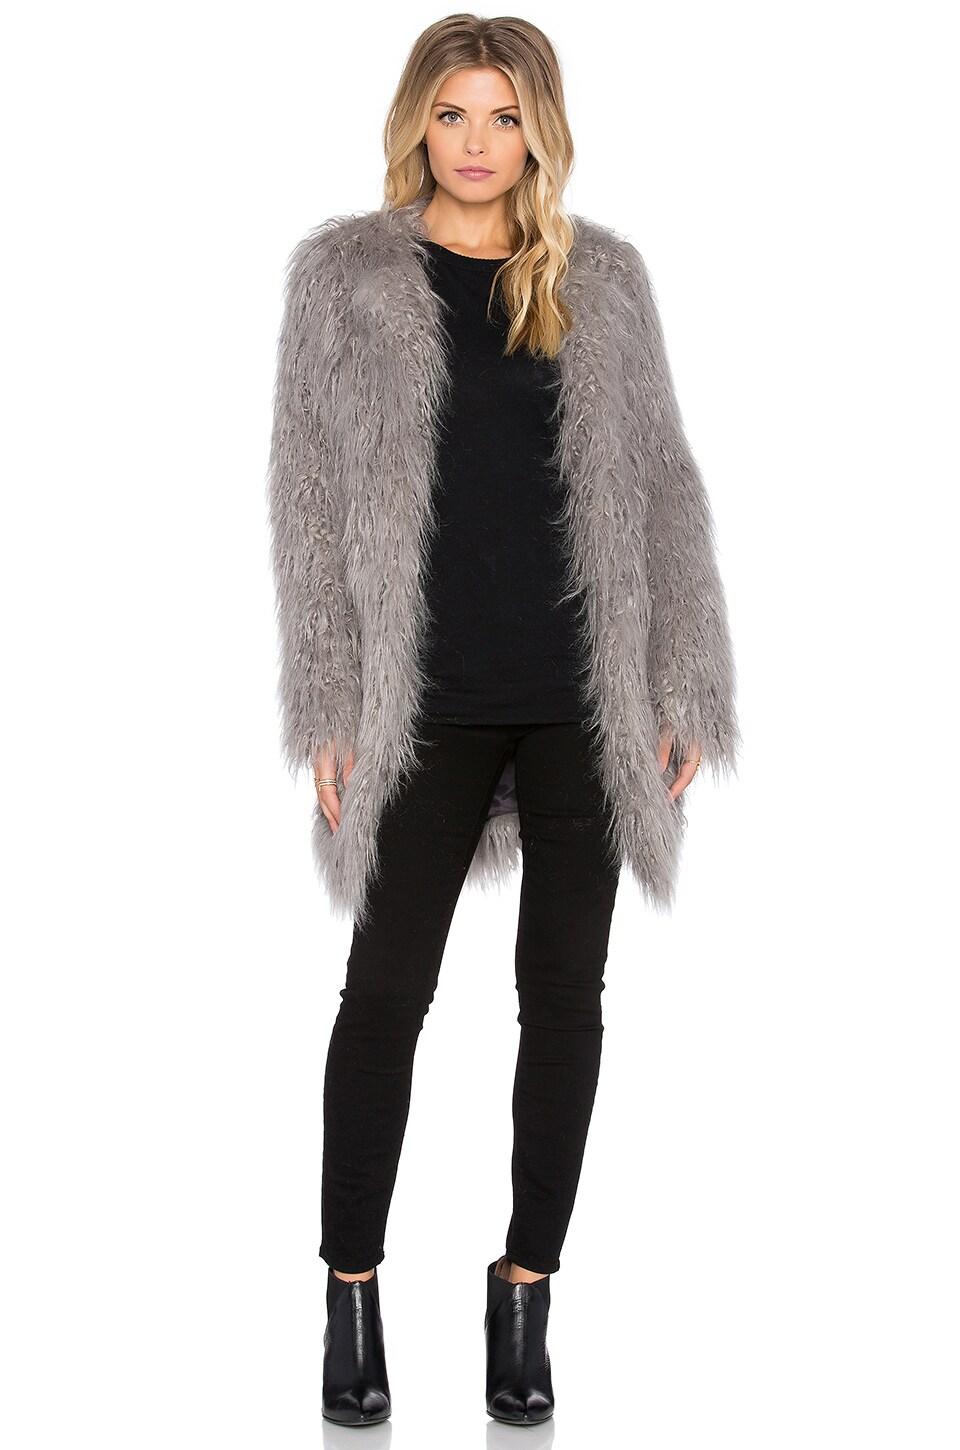 Mongolian Faux Fur Coat at Revolve Clothing